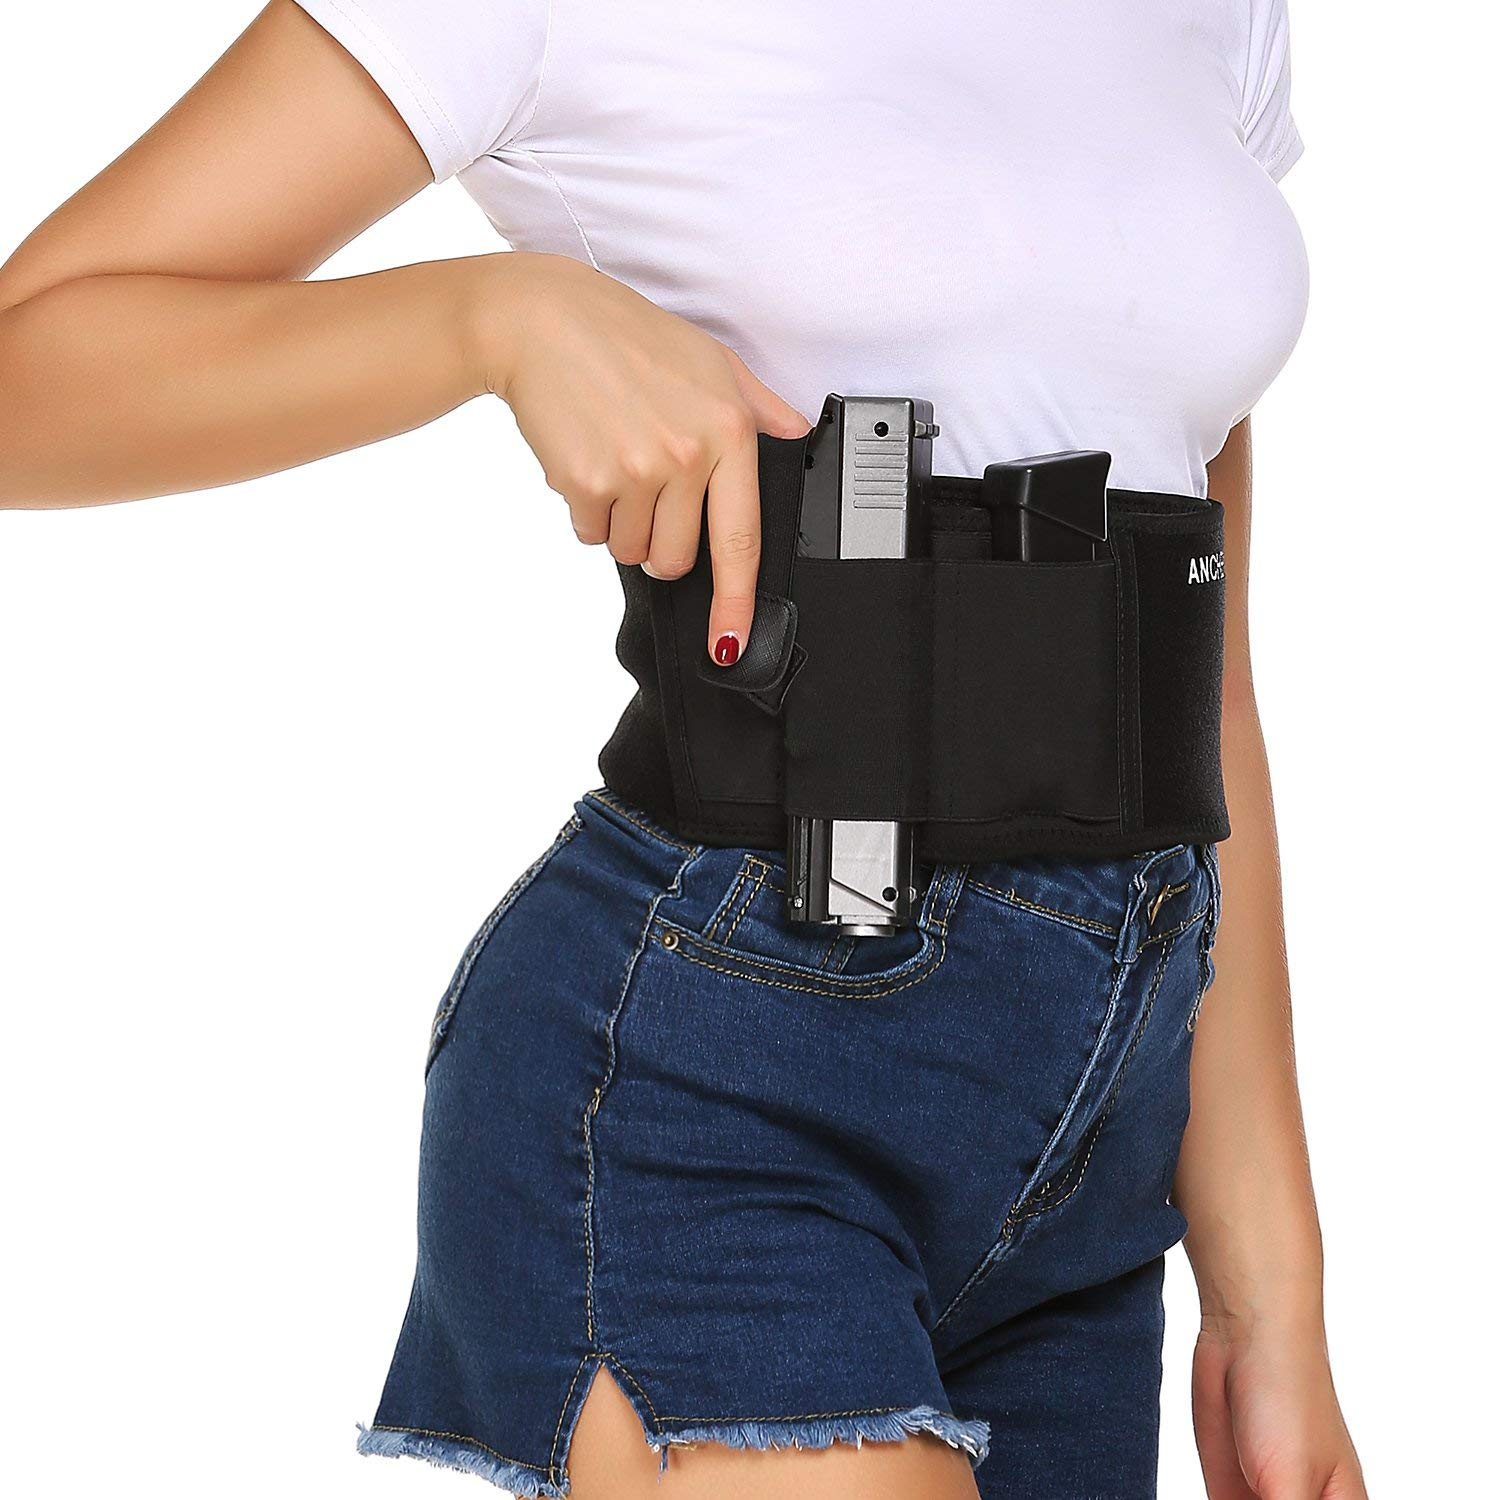 Belly Band Holster for Concealed Carry Waist Band Handgun Carrying System